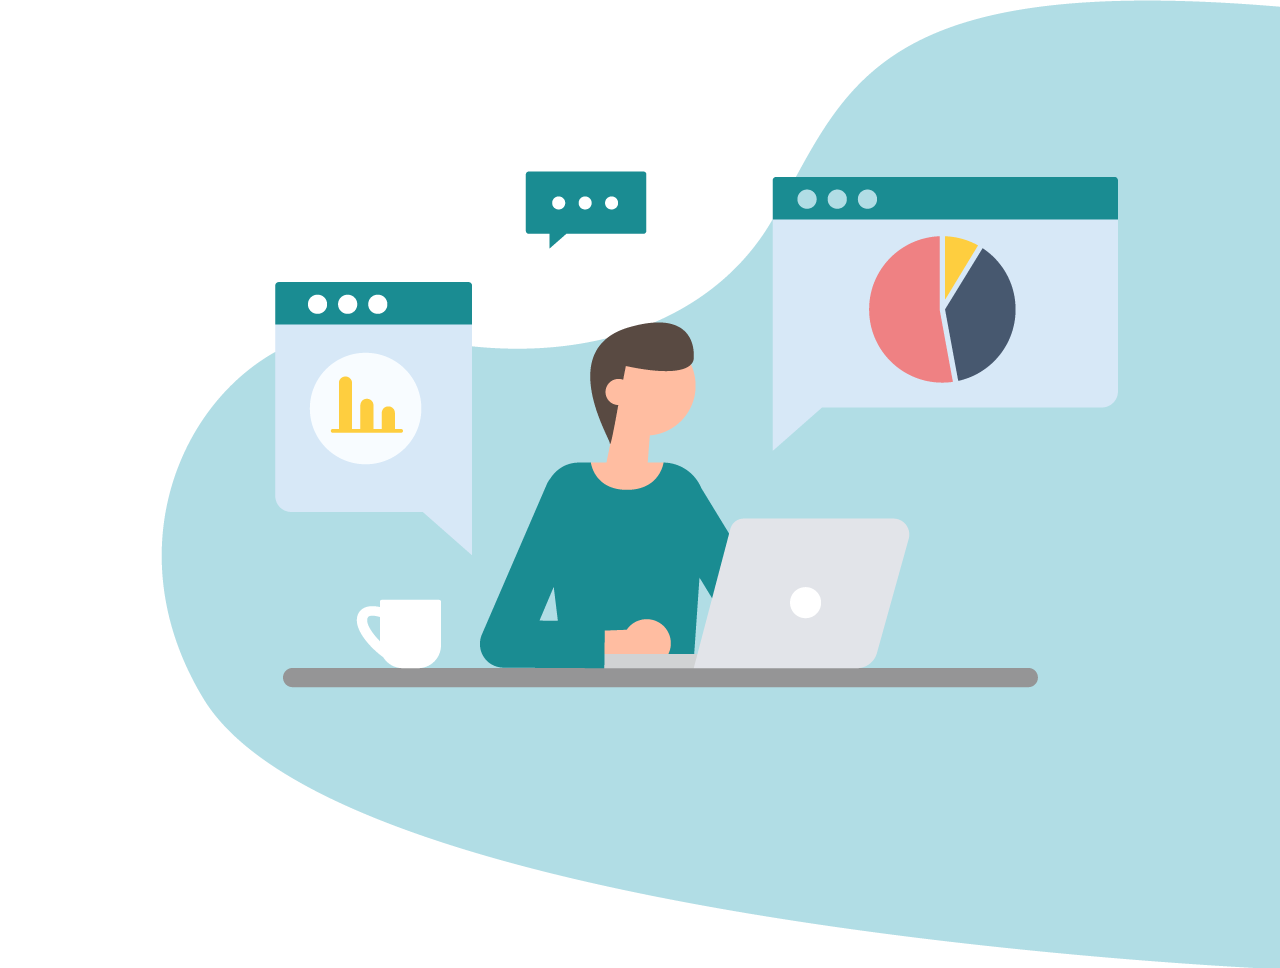 With Qooling you can use data to improve your business